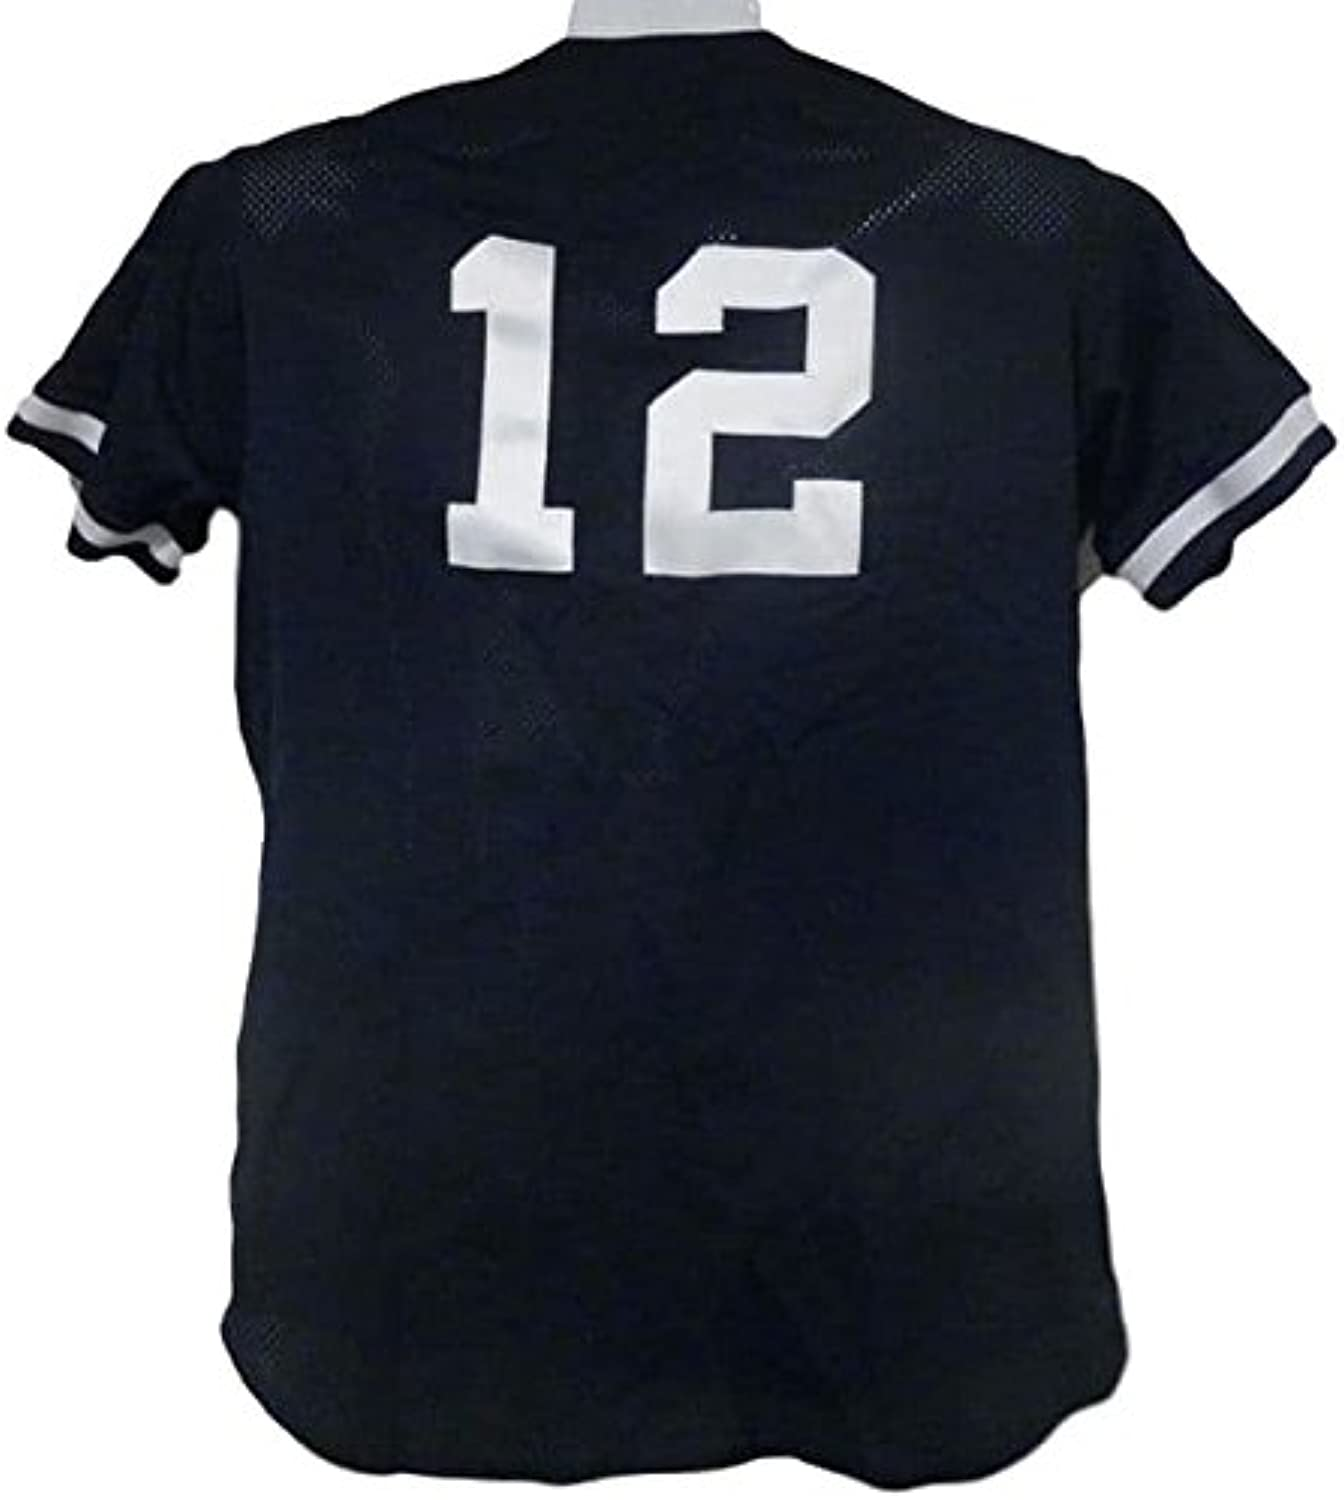 Denny Neagle Unsigned New York Yankees Game Used 2000 Batting Practice Jersey